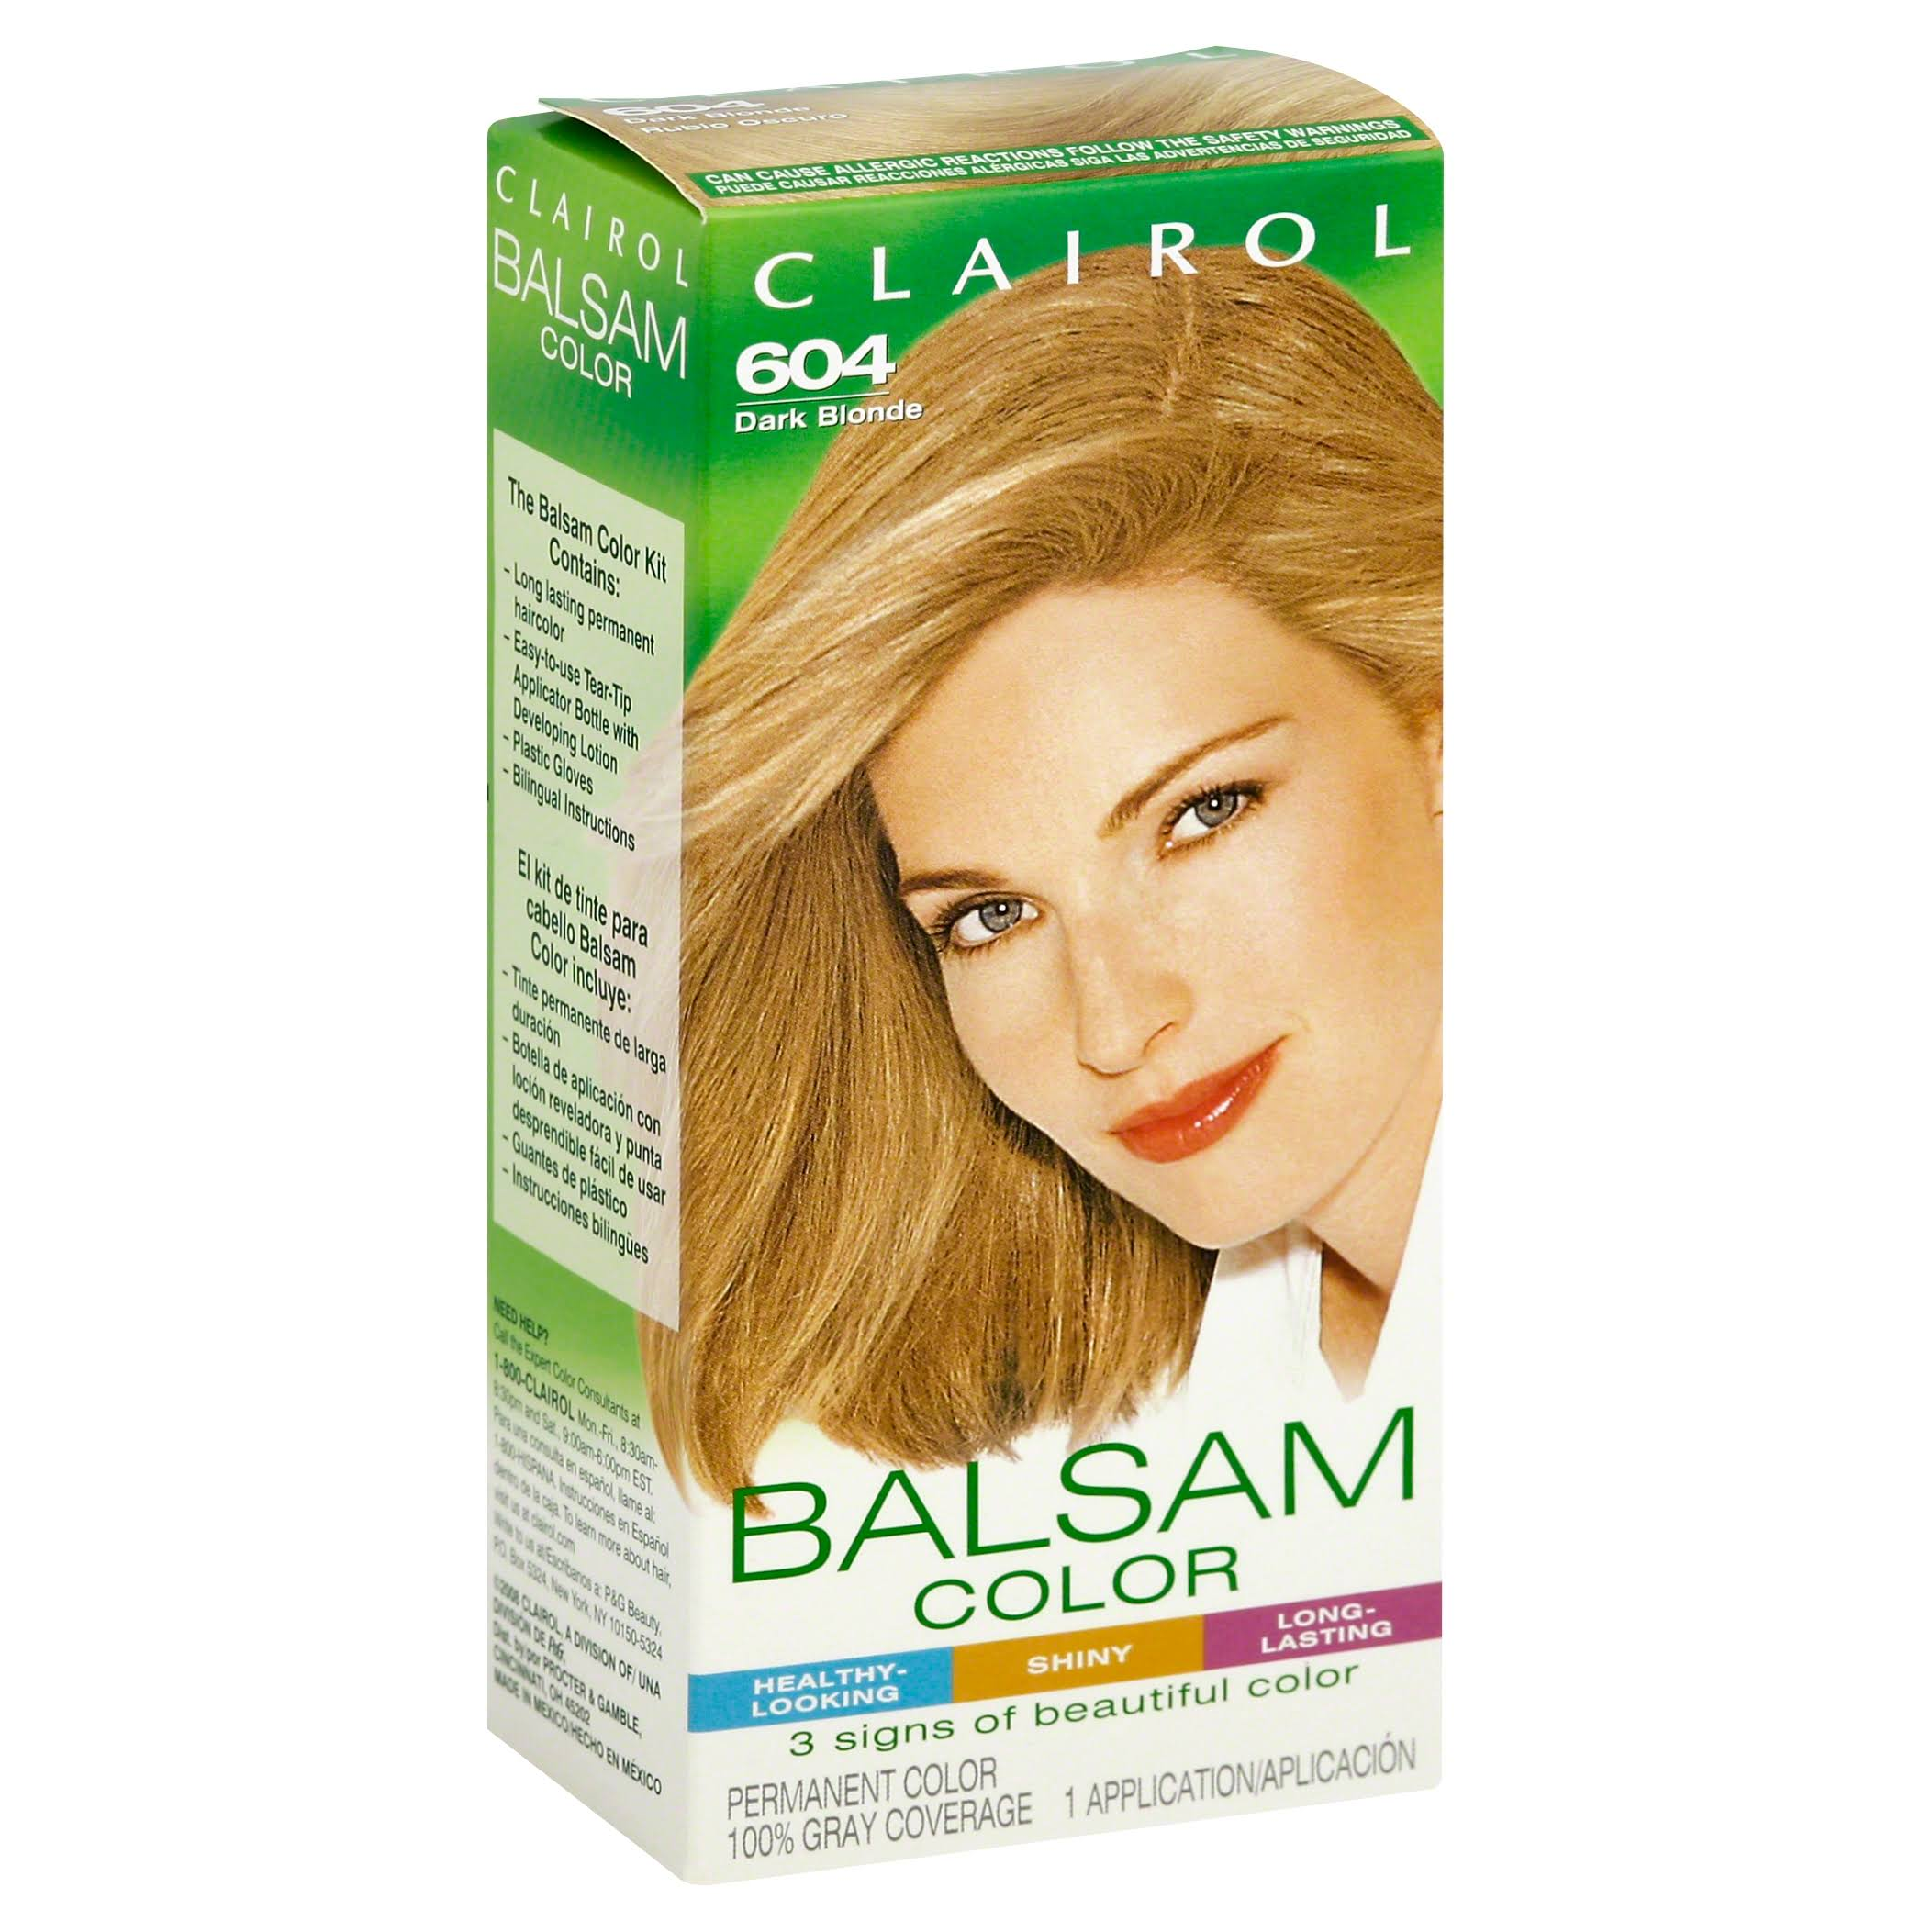 Clairol Balsam Hair Color - 604 Dark Blonde